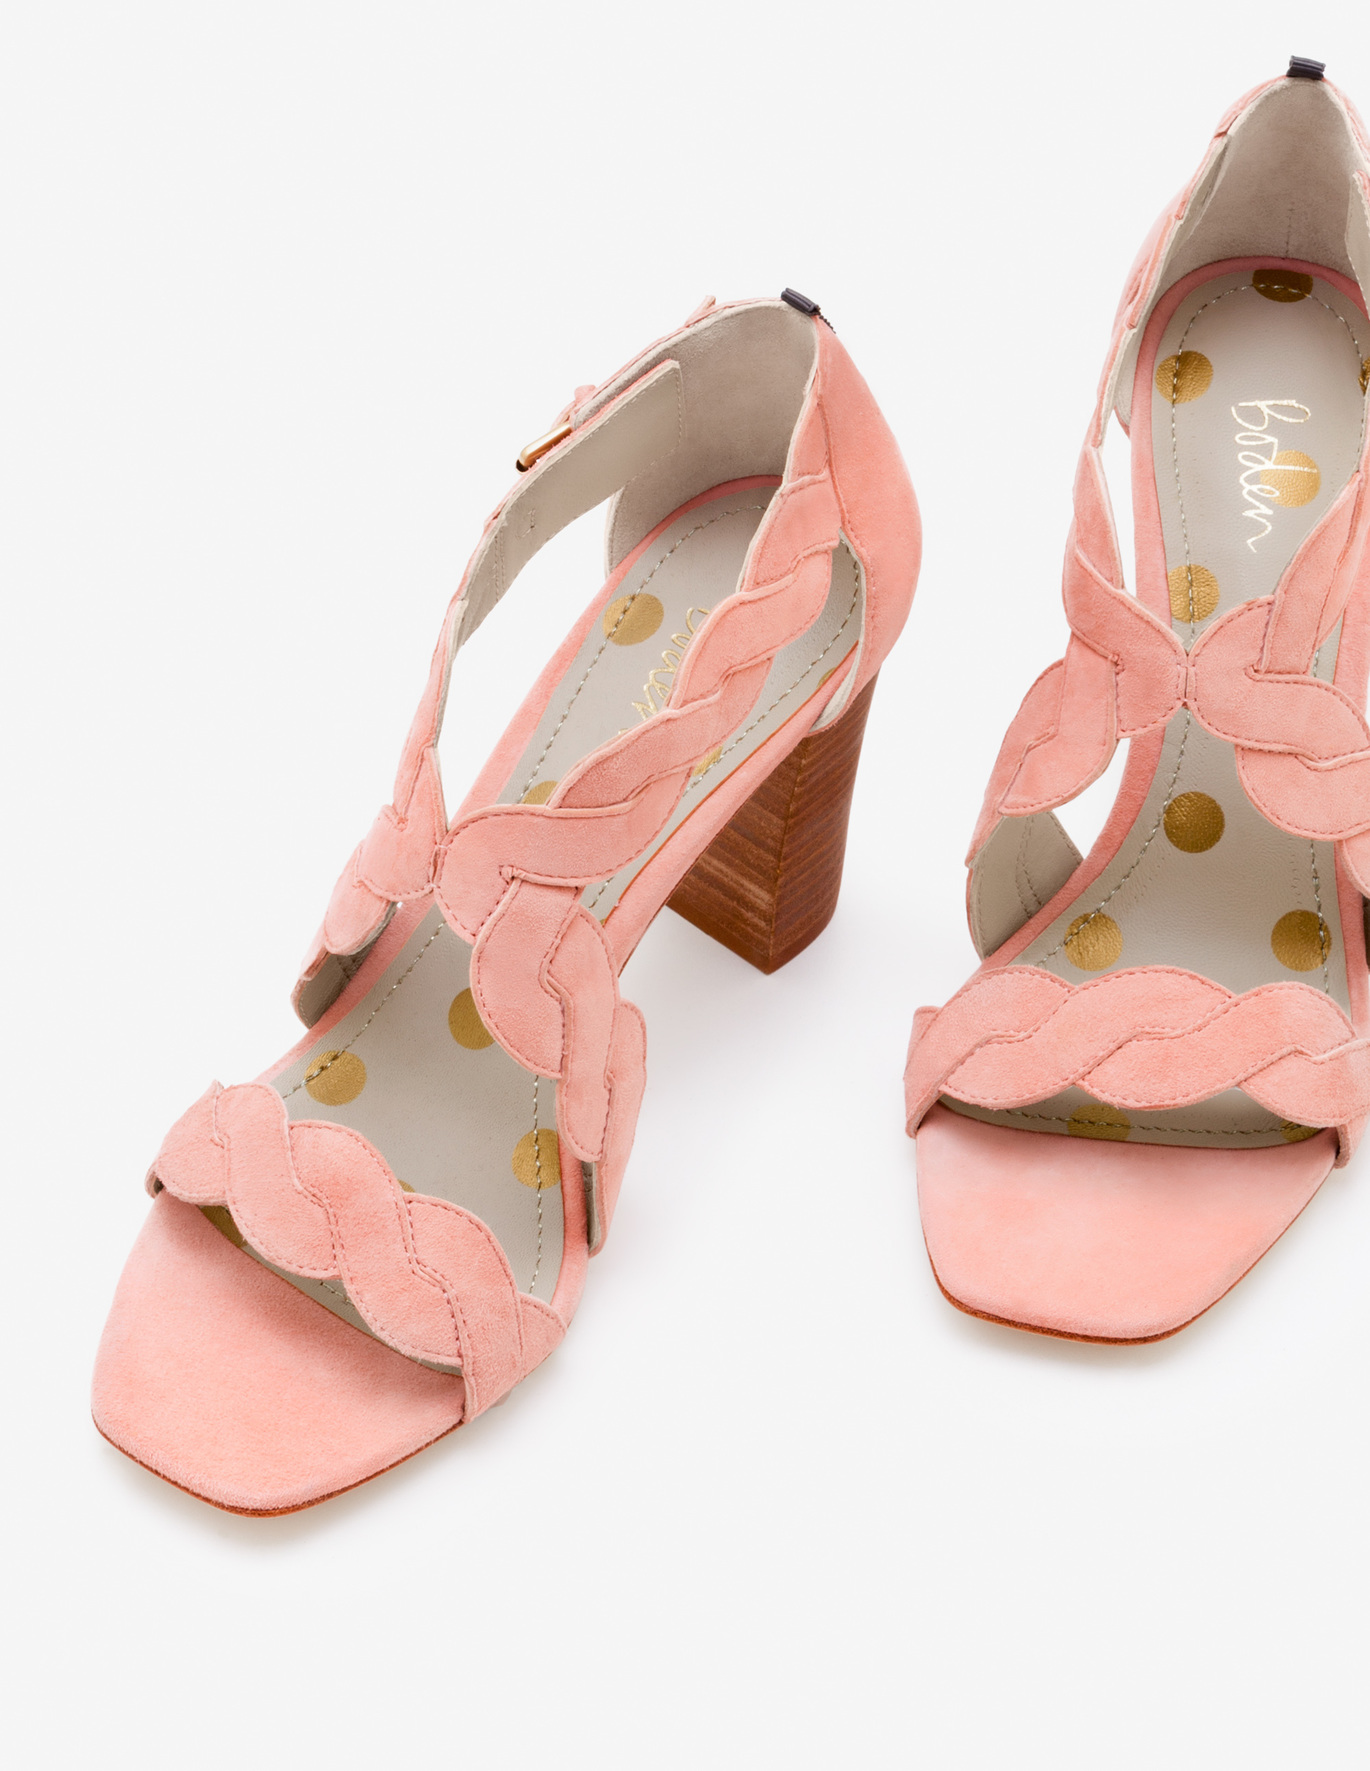 Boden Rosalie heels in chalky pink; image via Boden